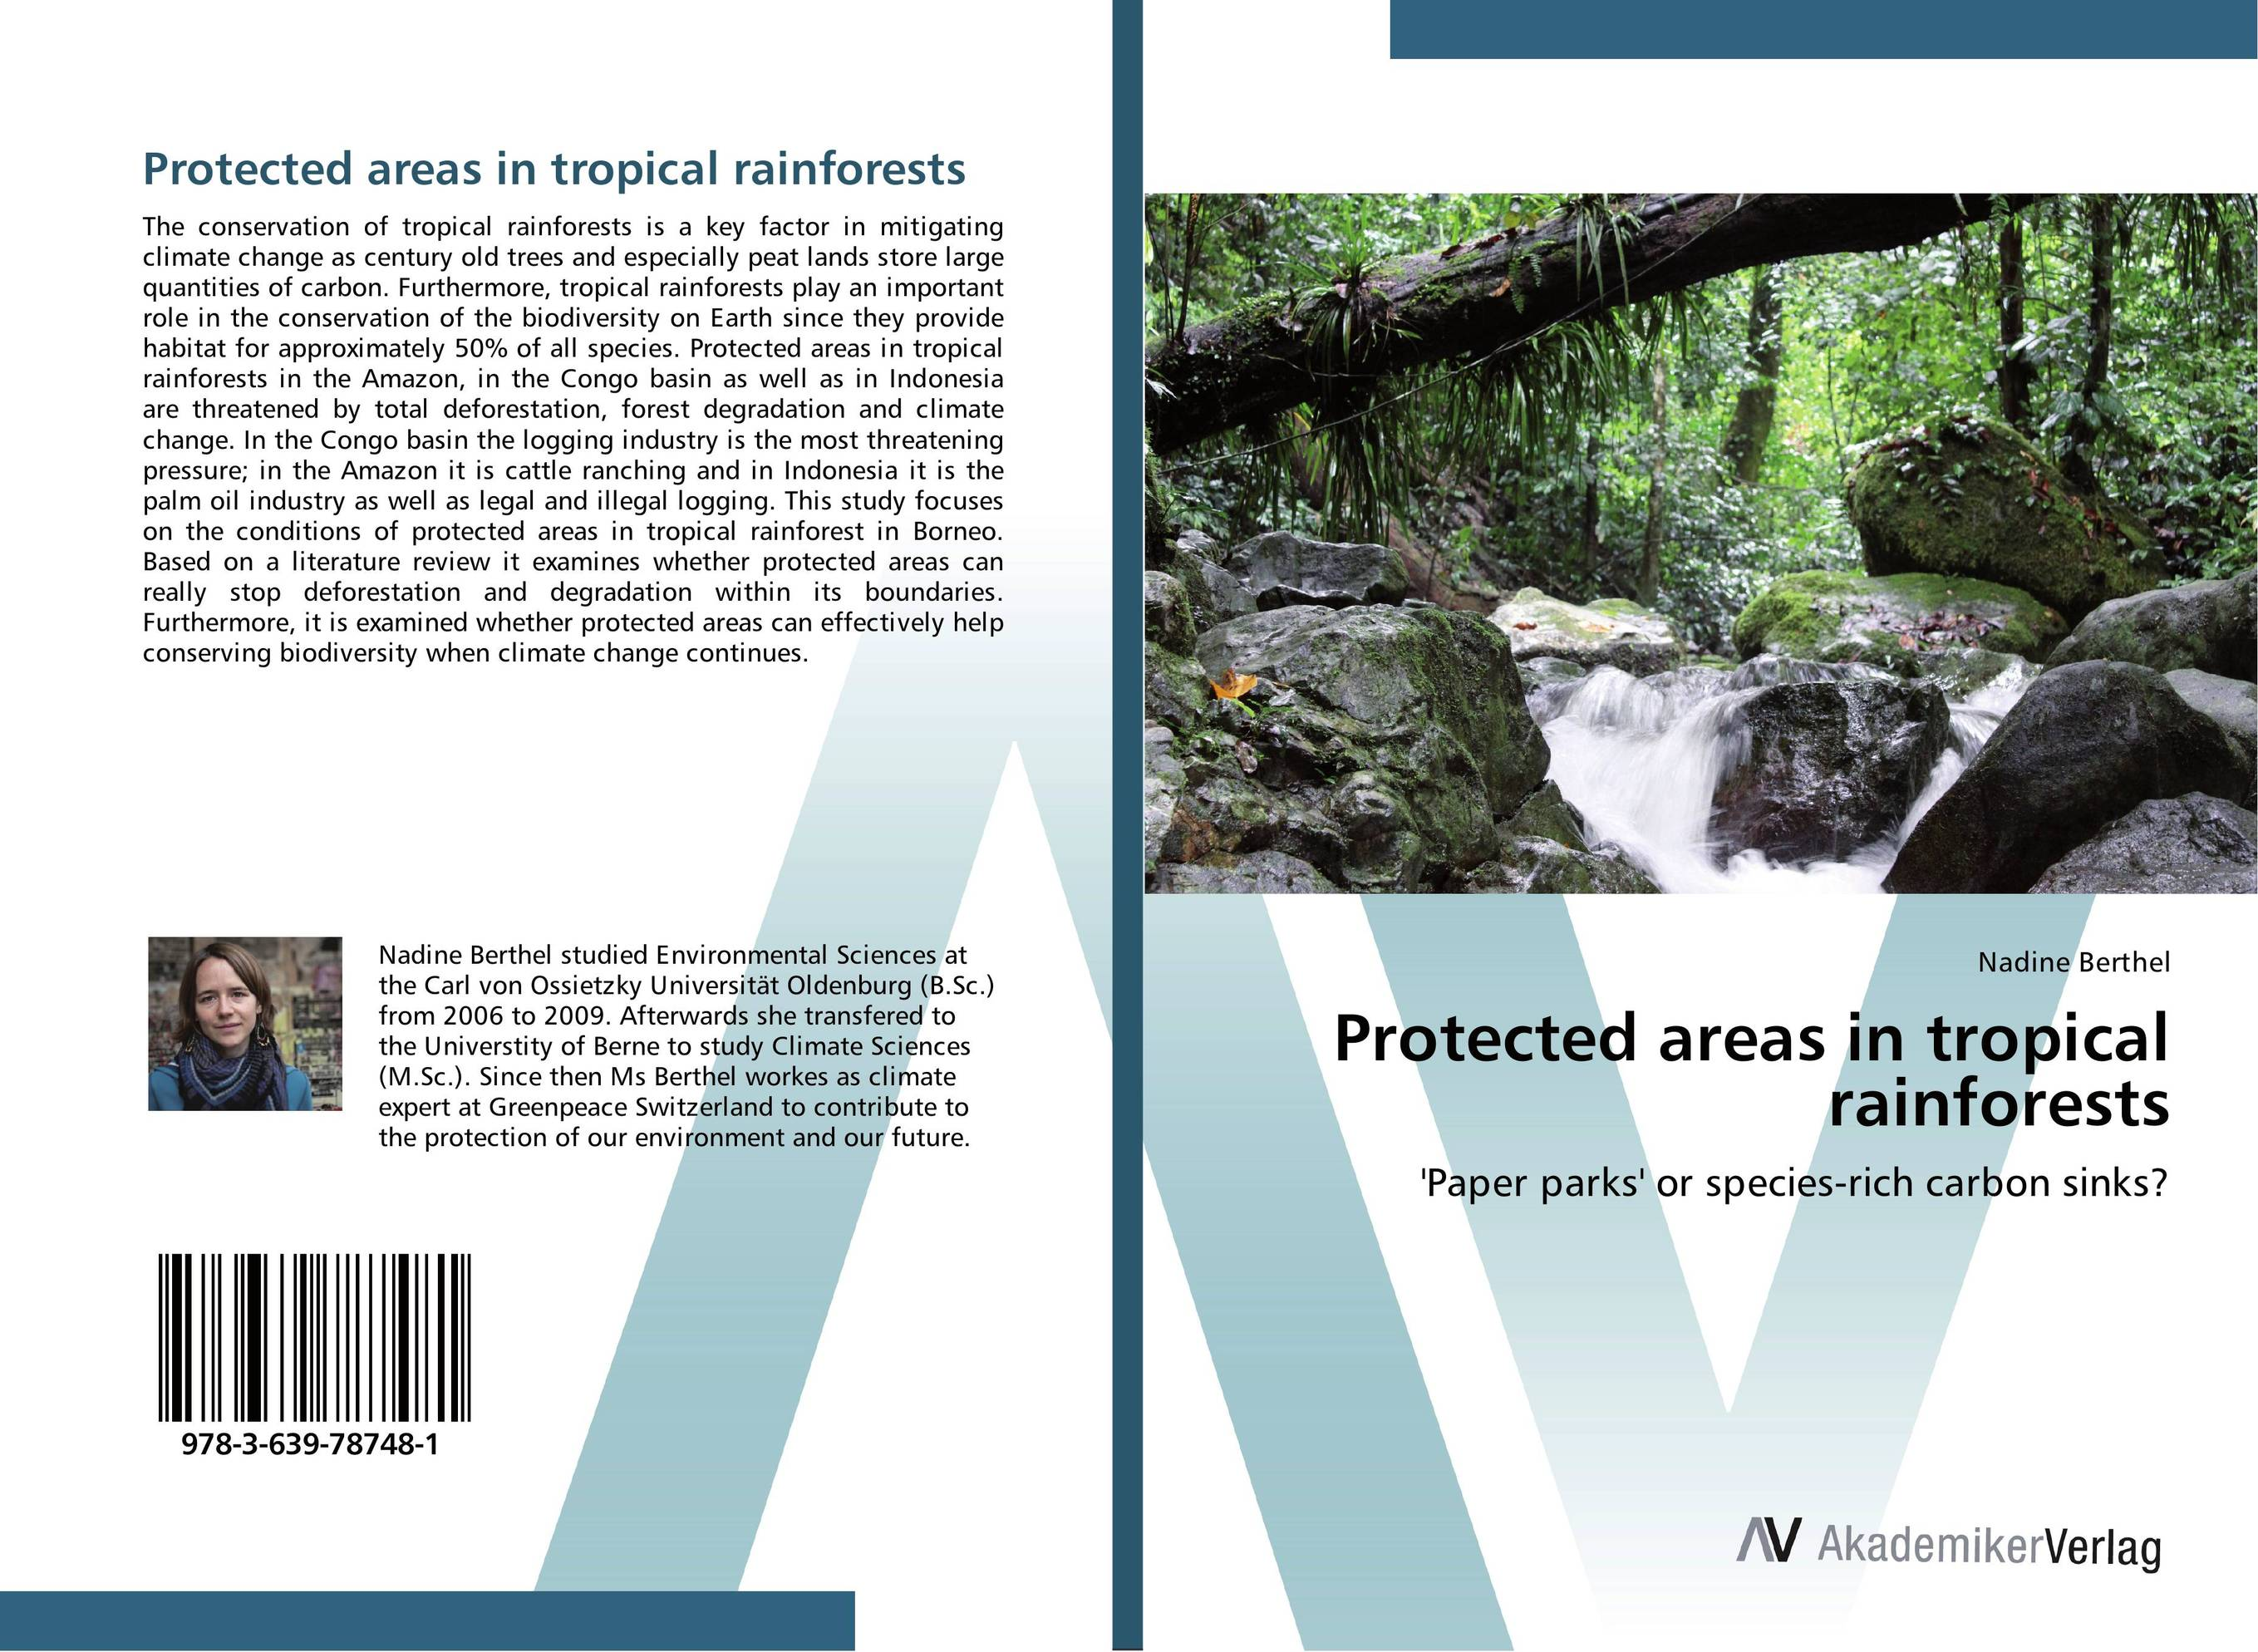 Protected areas in tropical rainforests купить дешево онлайн